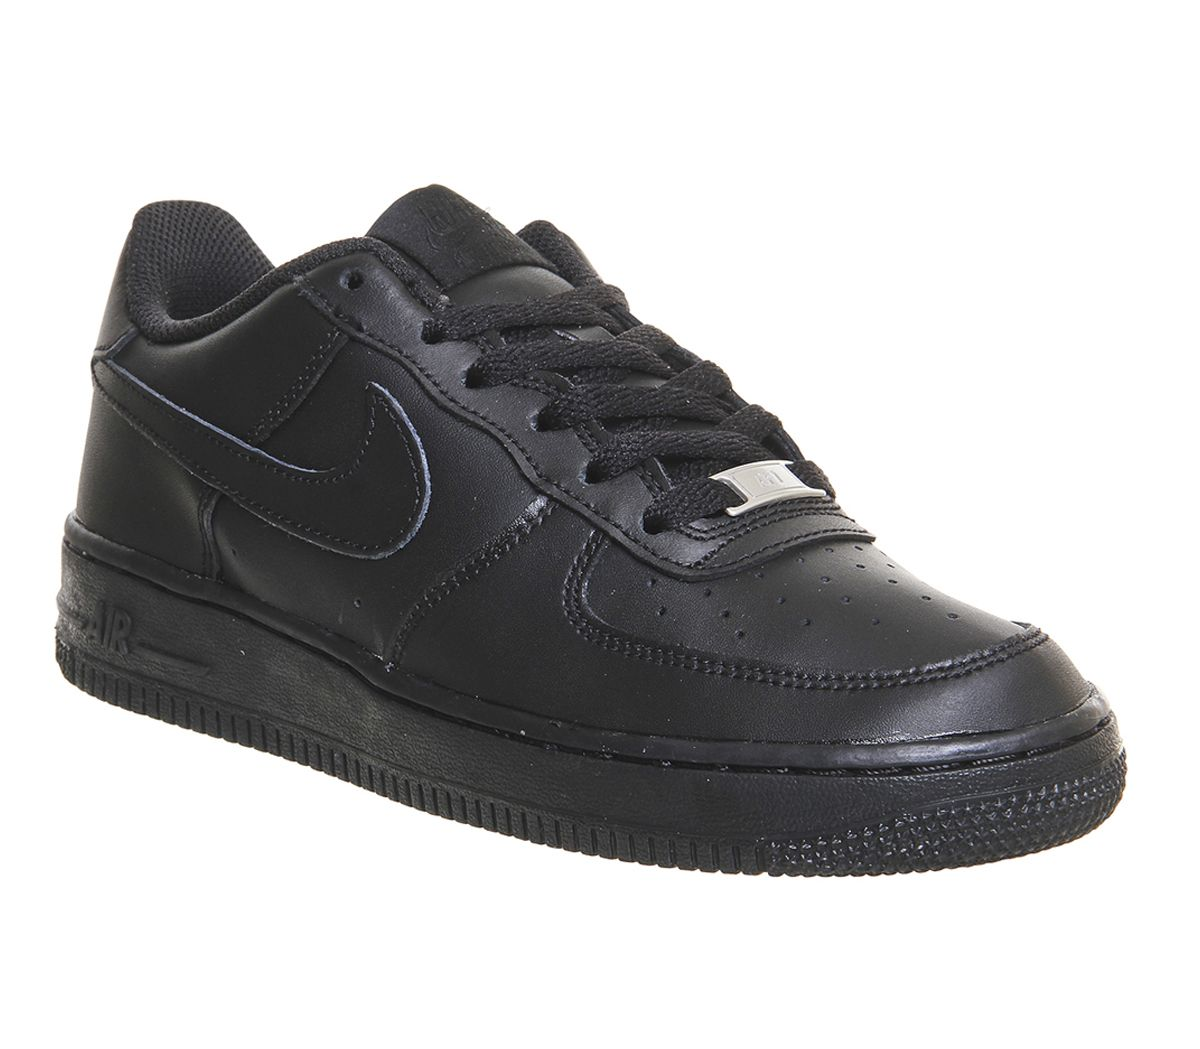 sale retailer 399ae 91d3b Nike Air Force 1 Trainers Blkblk - Kids Trainers